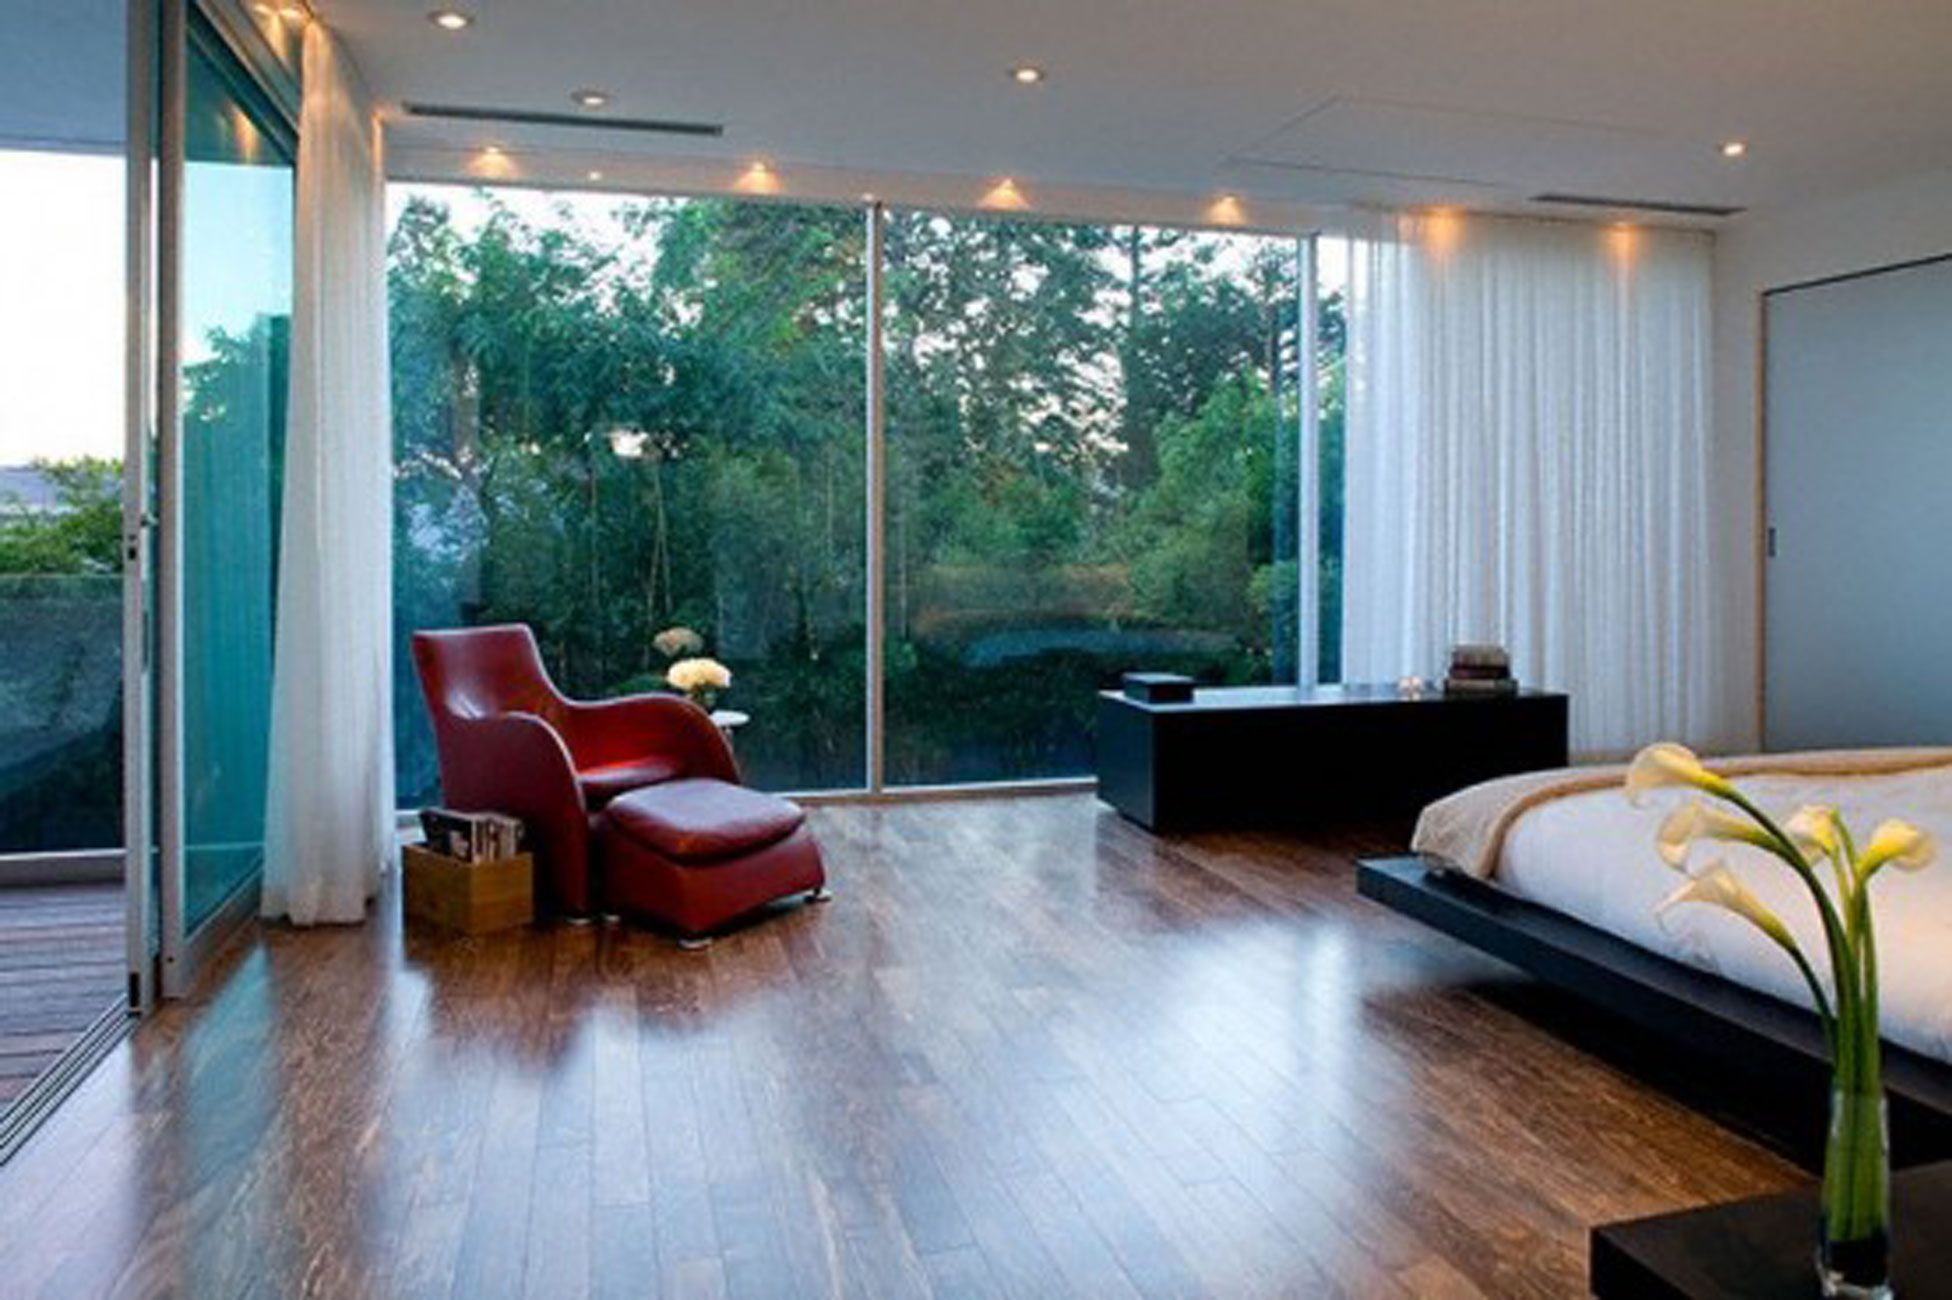 Merveilleux House · Modern House Design With Comfortable Interior Ideas Bedroom